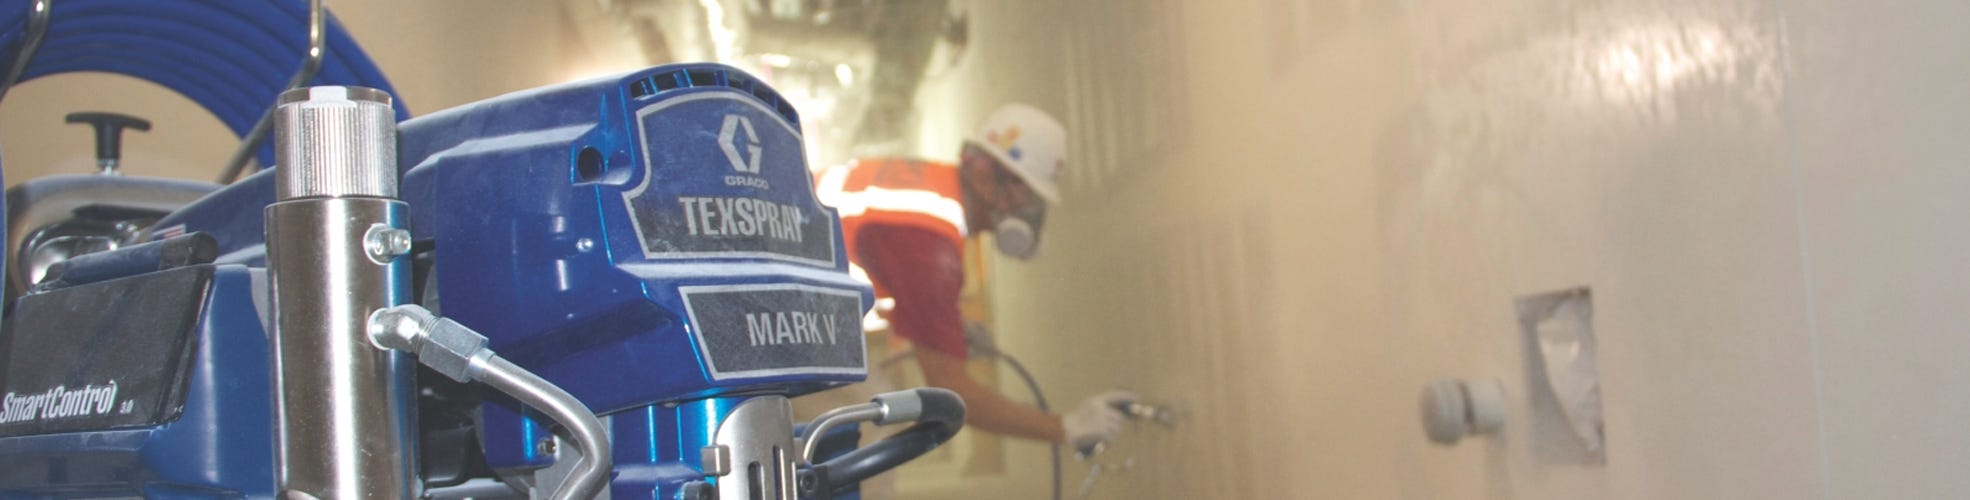 Accessories For Skim Coating Sprayers